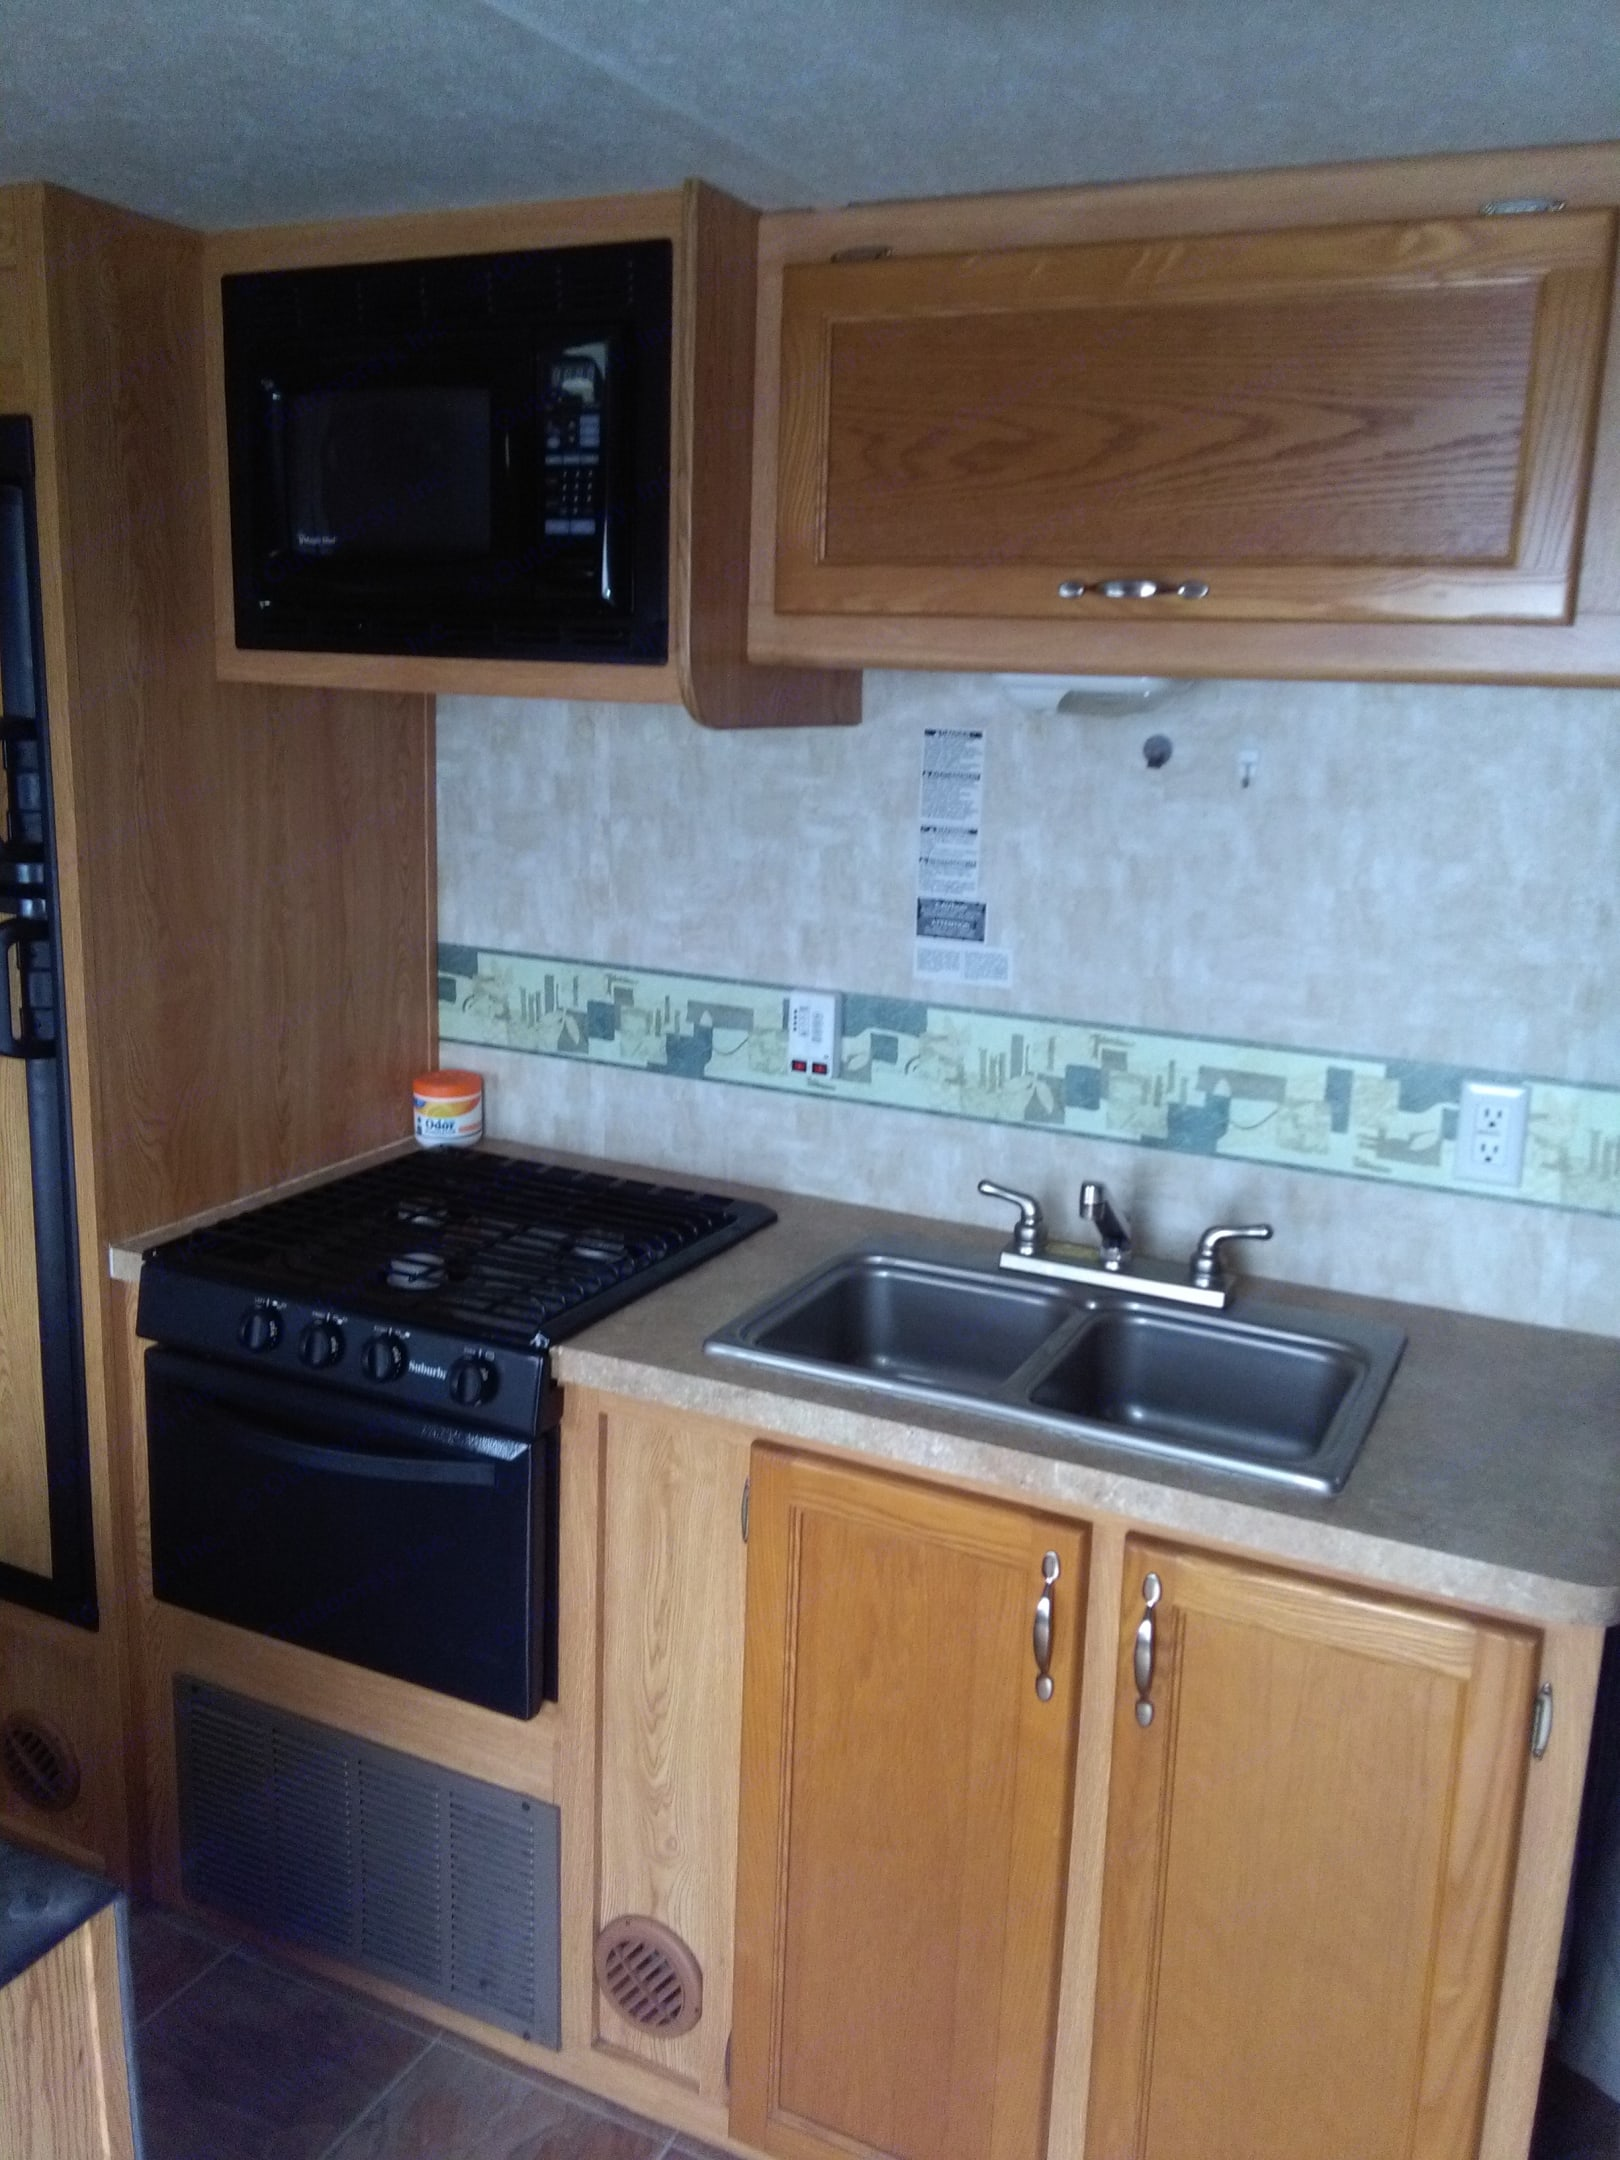 3 burners,oven, micro wave above , double sink. Forest River Cherokee Grey Wolf 2009